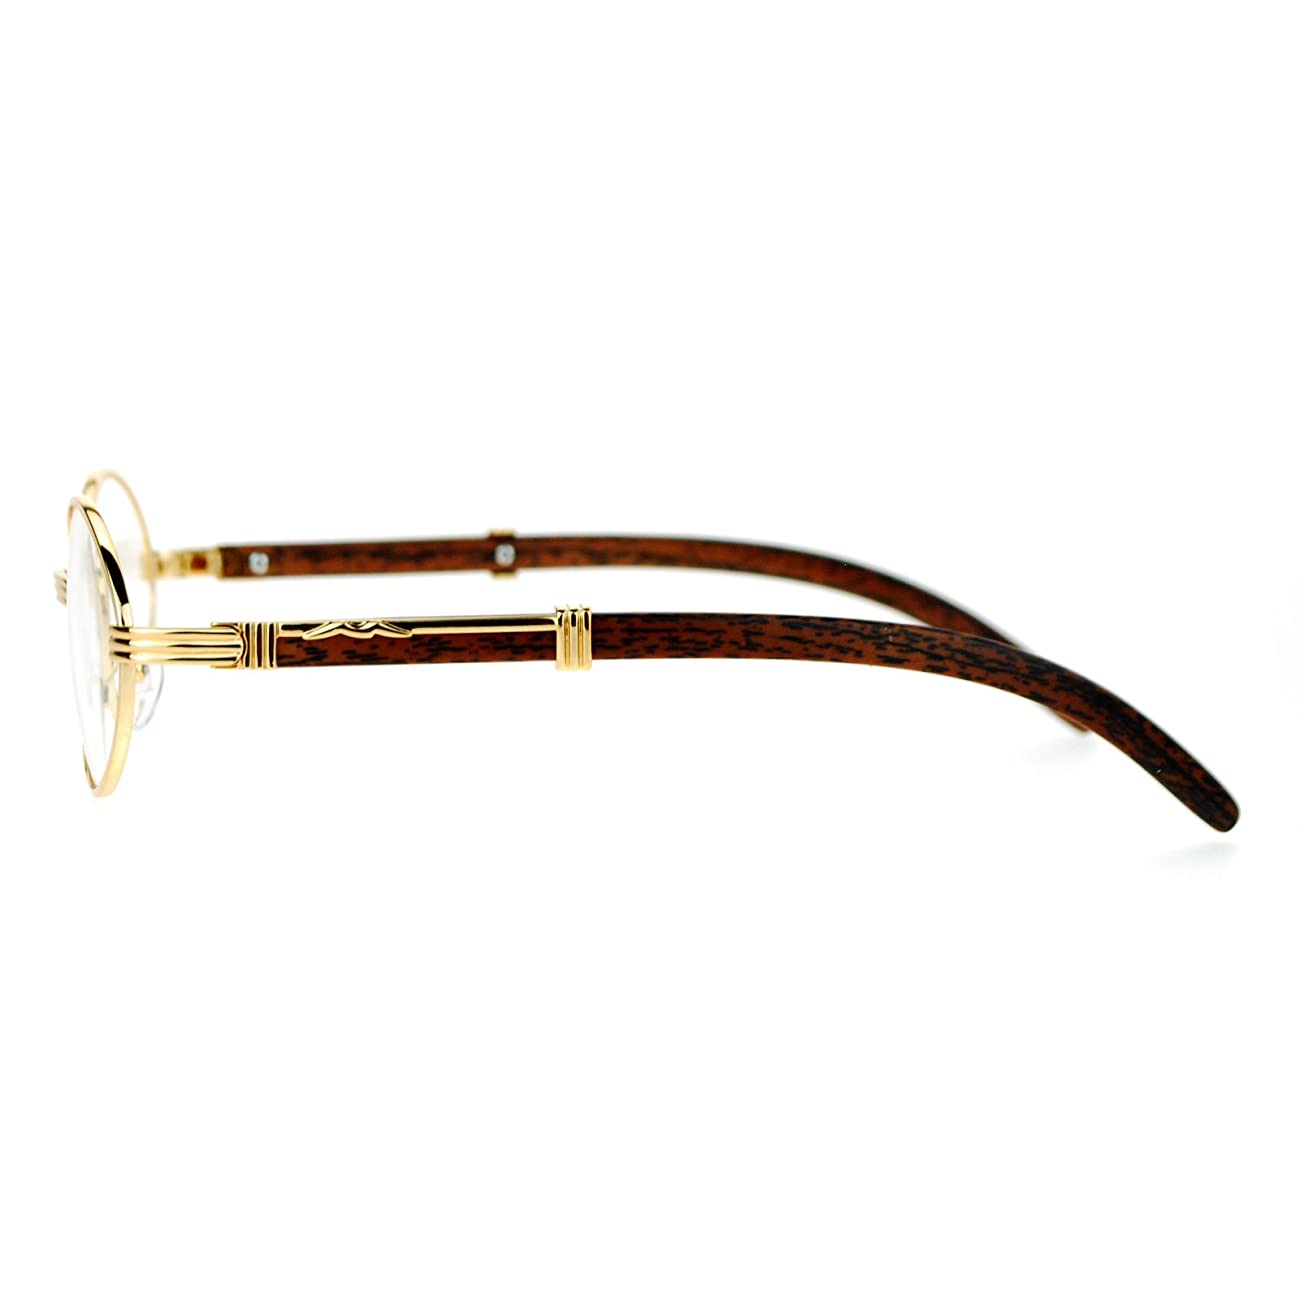 SA106 Art Nouveau Vintage Style Oval Metal Frame Eye Glasses 3